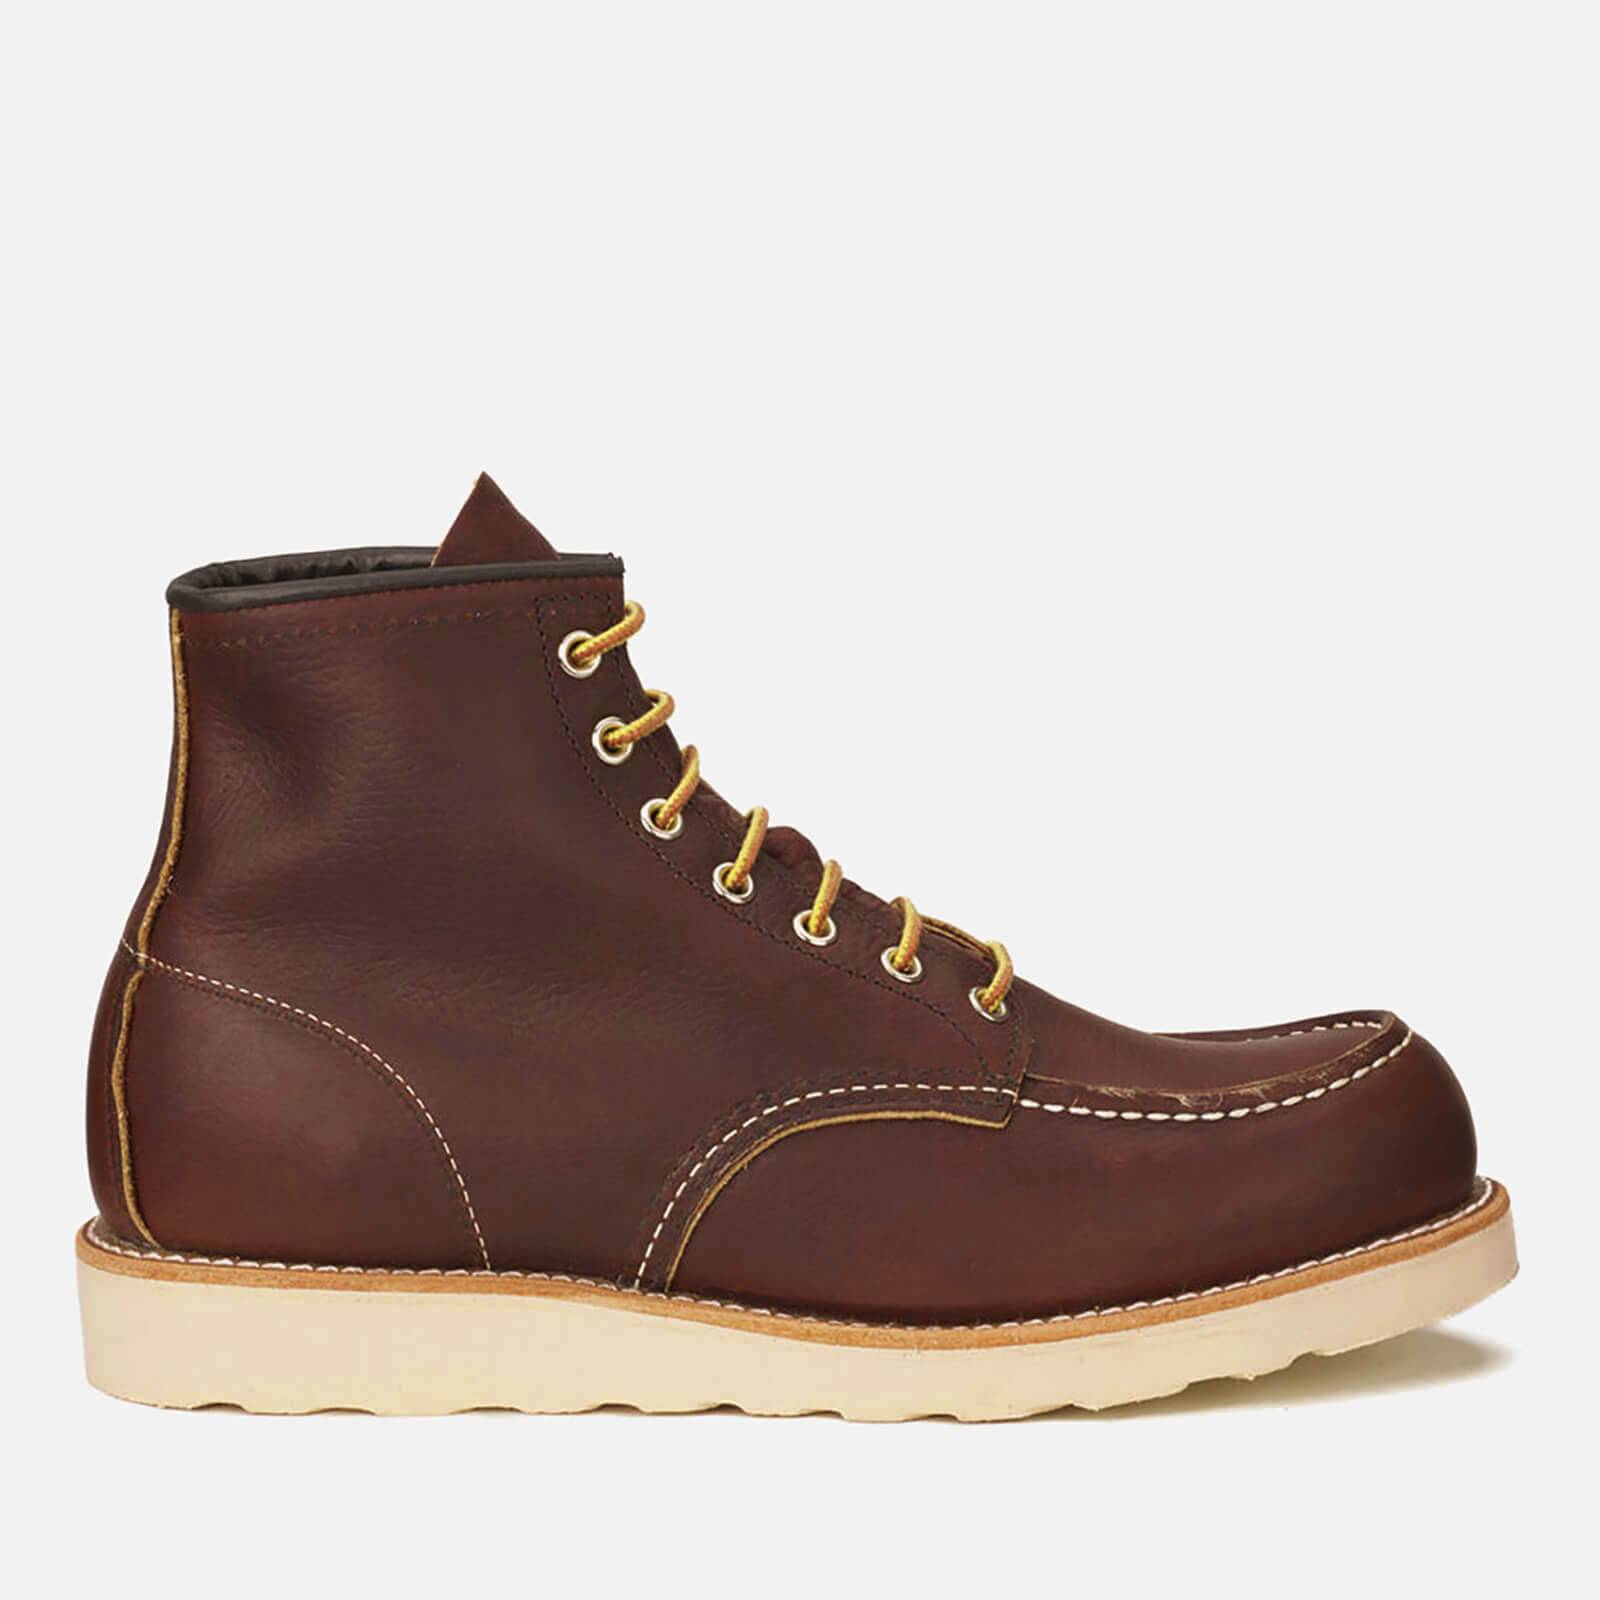 Red Wing Men's 6 Inch Moc Toe Leather Lace Up Boots - Briar Oil Slick - UK 10/US 11